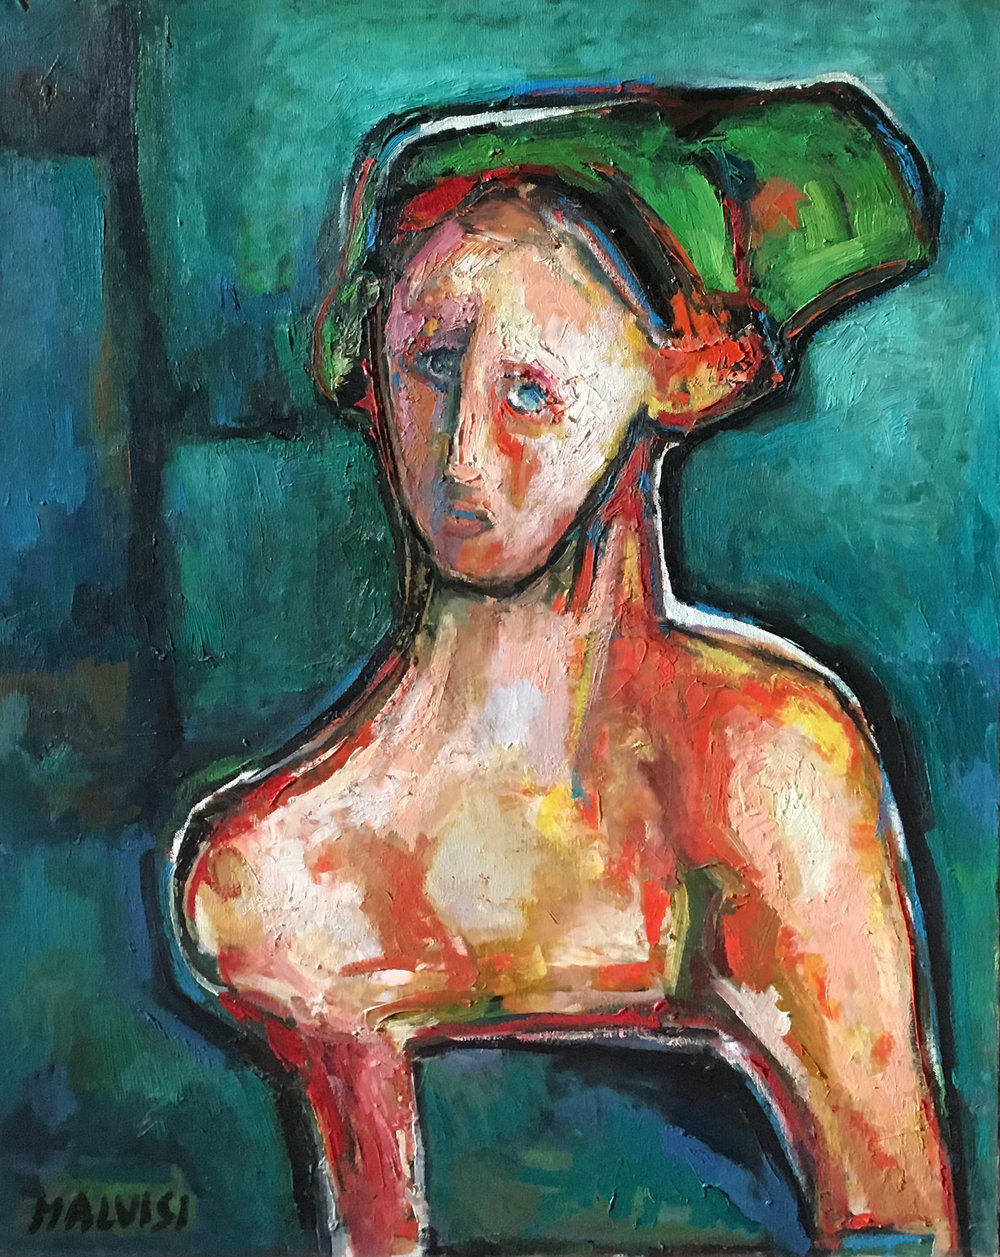 <b>The intimate face</b><br>(Orig. L'intimita' del volto) <br> 1998 Oil on canvas <br> cm 60 x 80